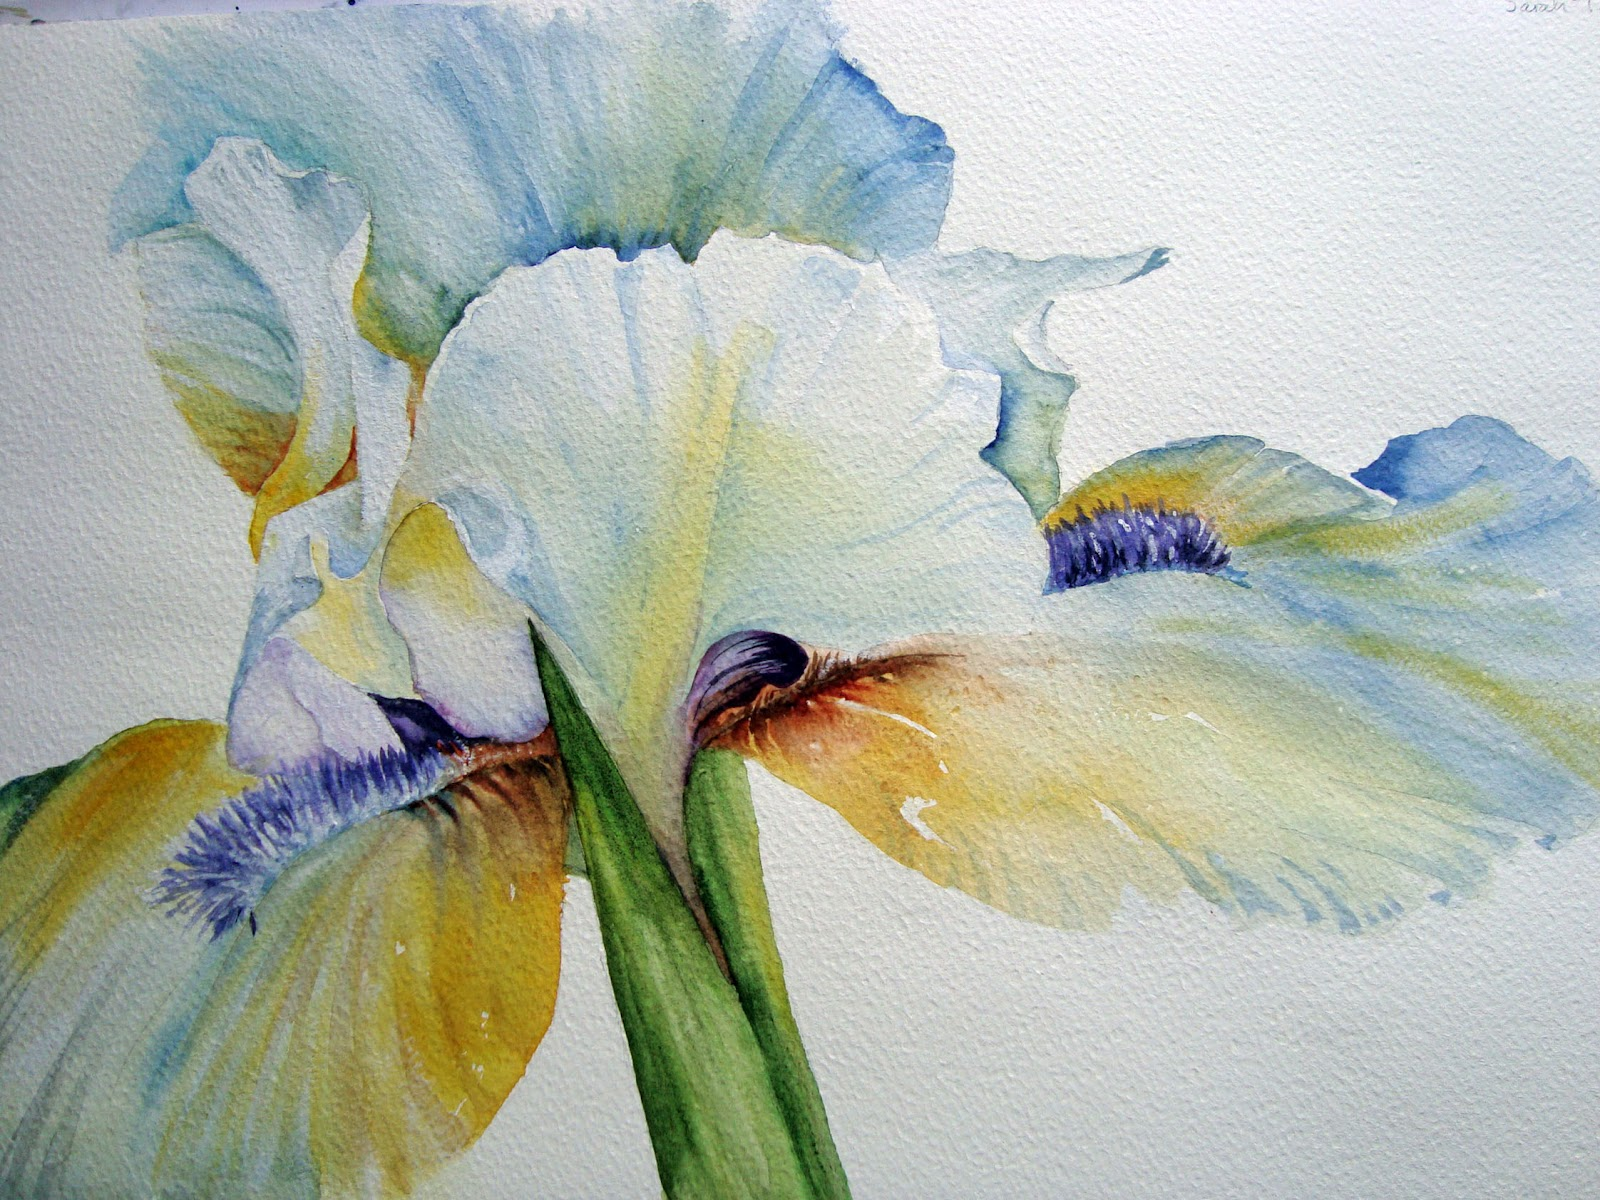 Watercolour florals white iris i then proceeded to add the background to the painting i filled each area with similar but stronger mixes of the original colours wet into wet and then izmirmasajfo